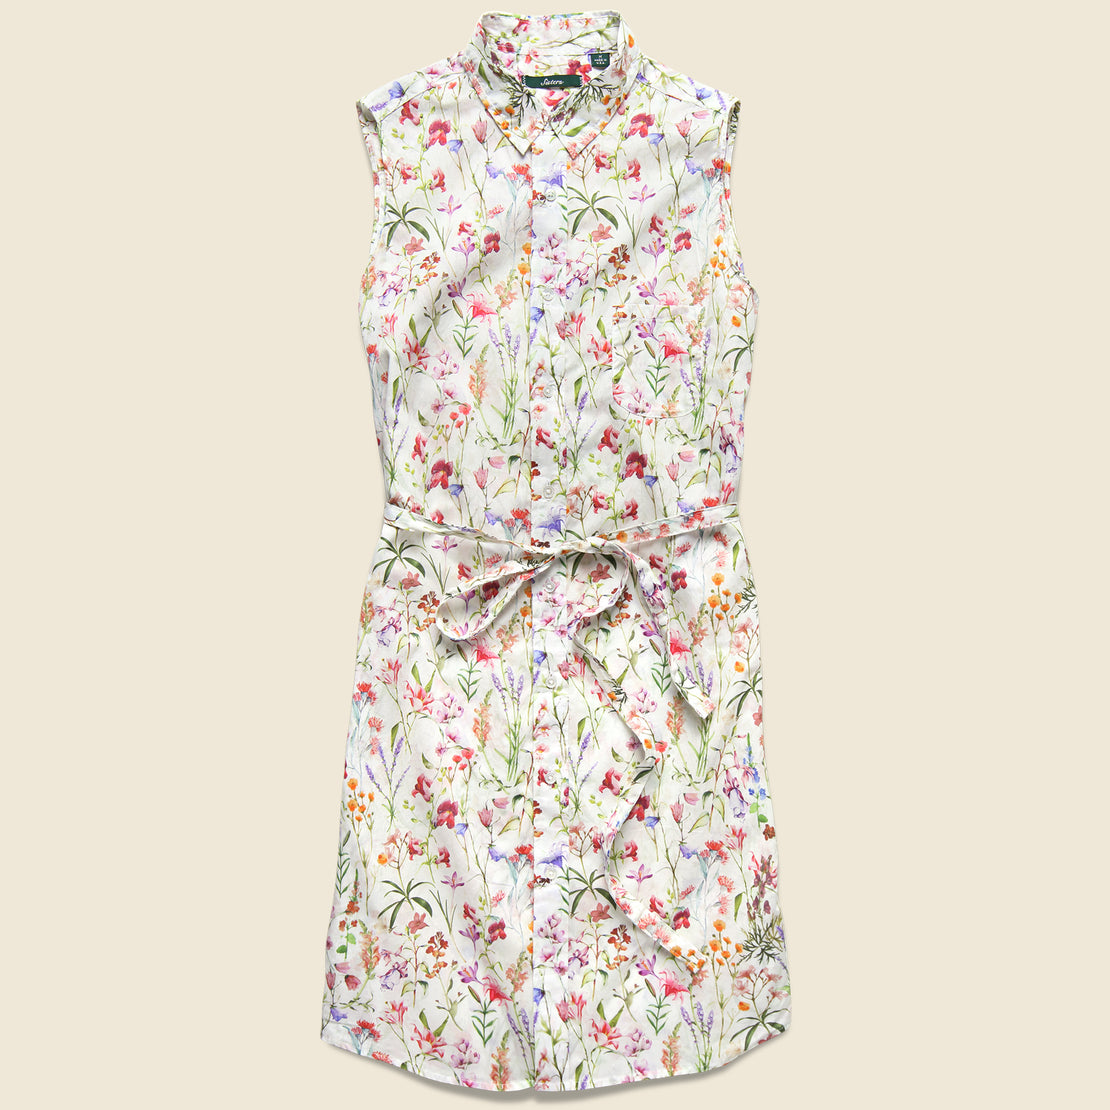 Gitman Vintage Sleeveless Shirt Dress - Spring Floral